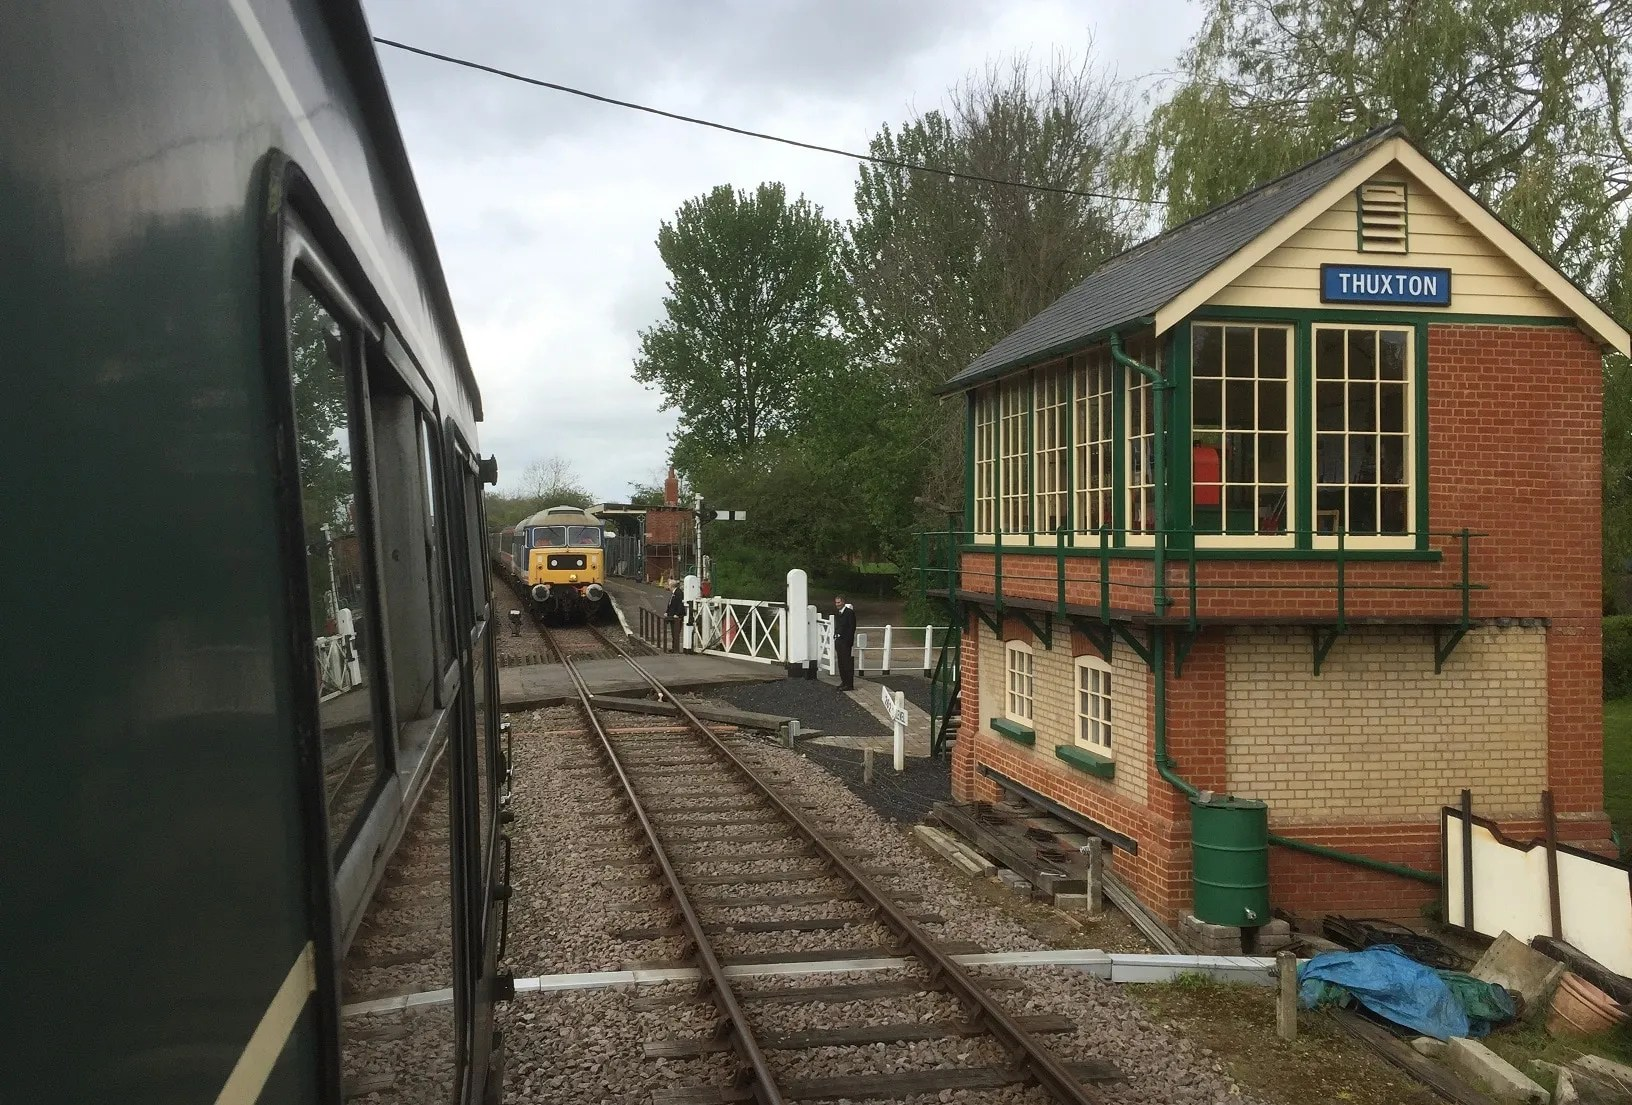 Approaching Thuxton Station with its new signal box